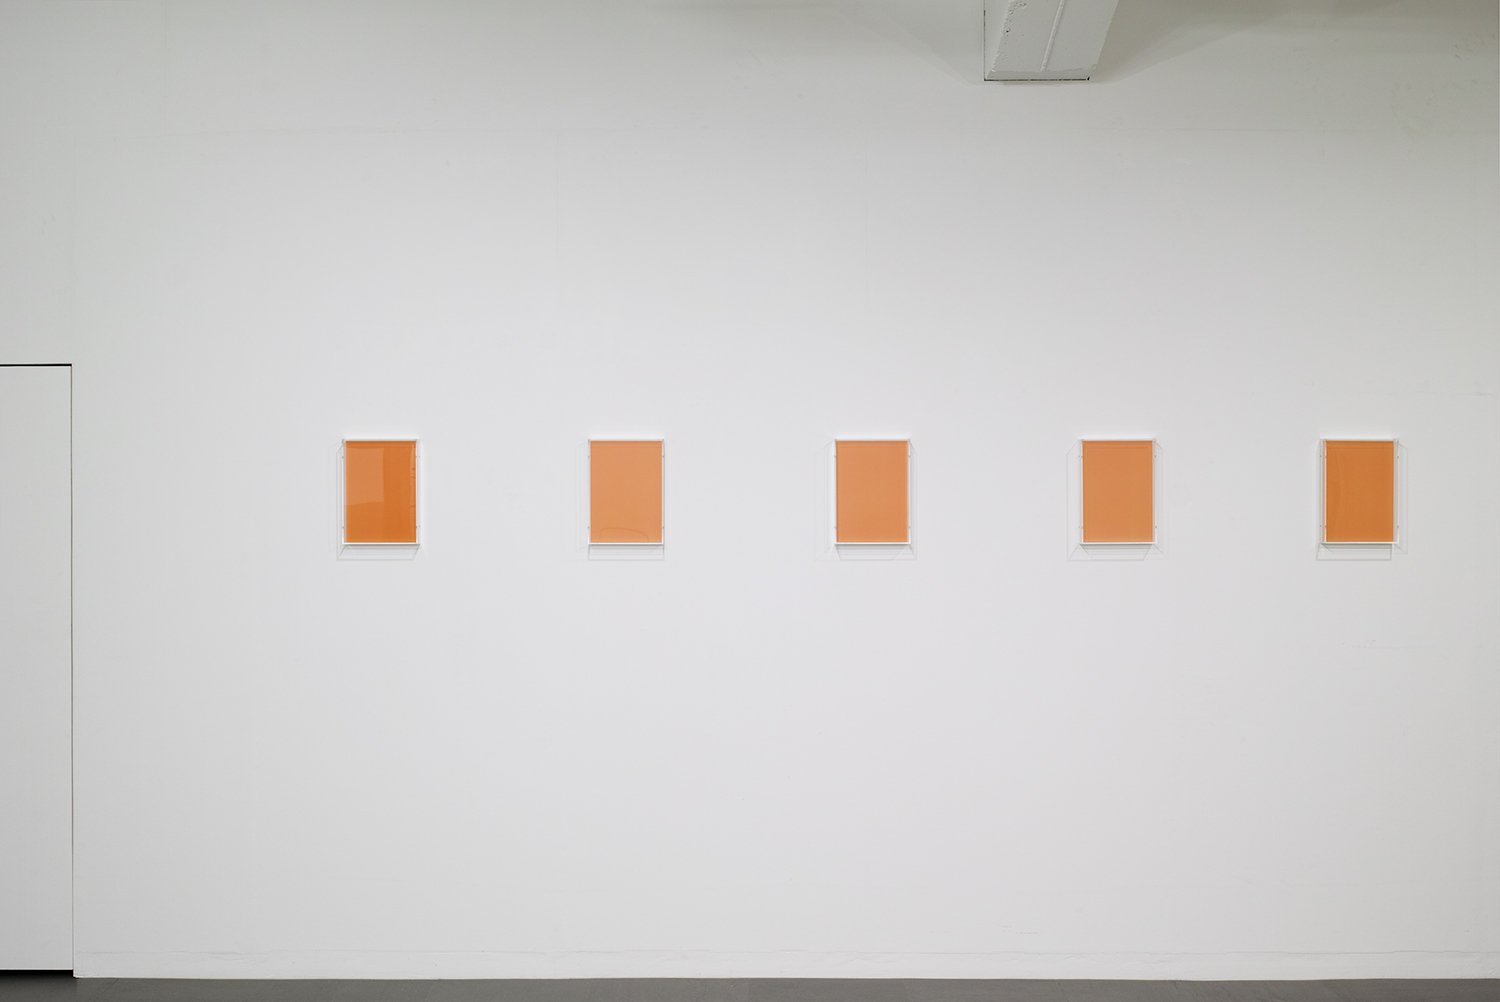 <strong>Untitled Orange</strong><br>紙、アクリルボックス、木材、紫外線 22x30.7x5.4cm each(set of 14) 2018